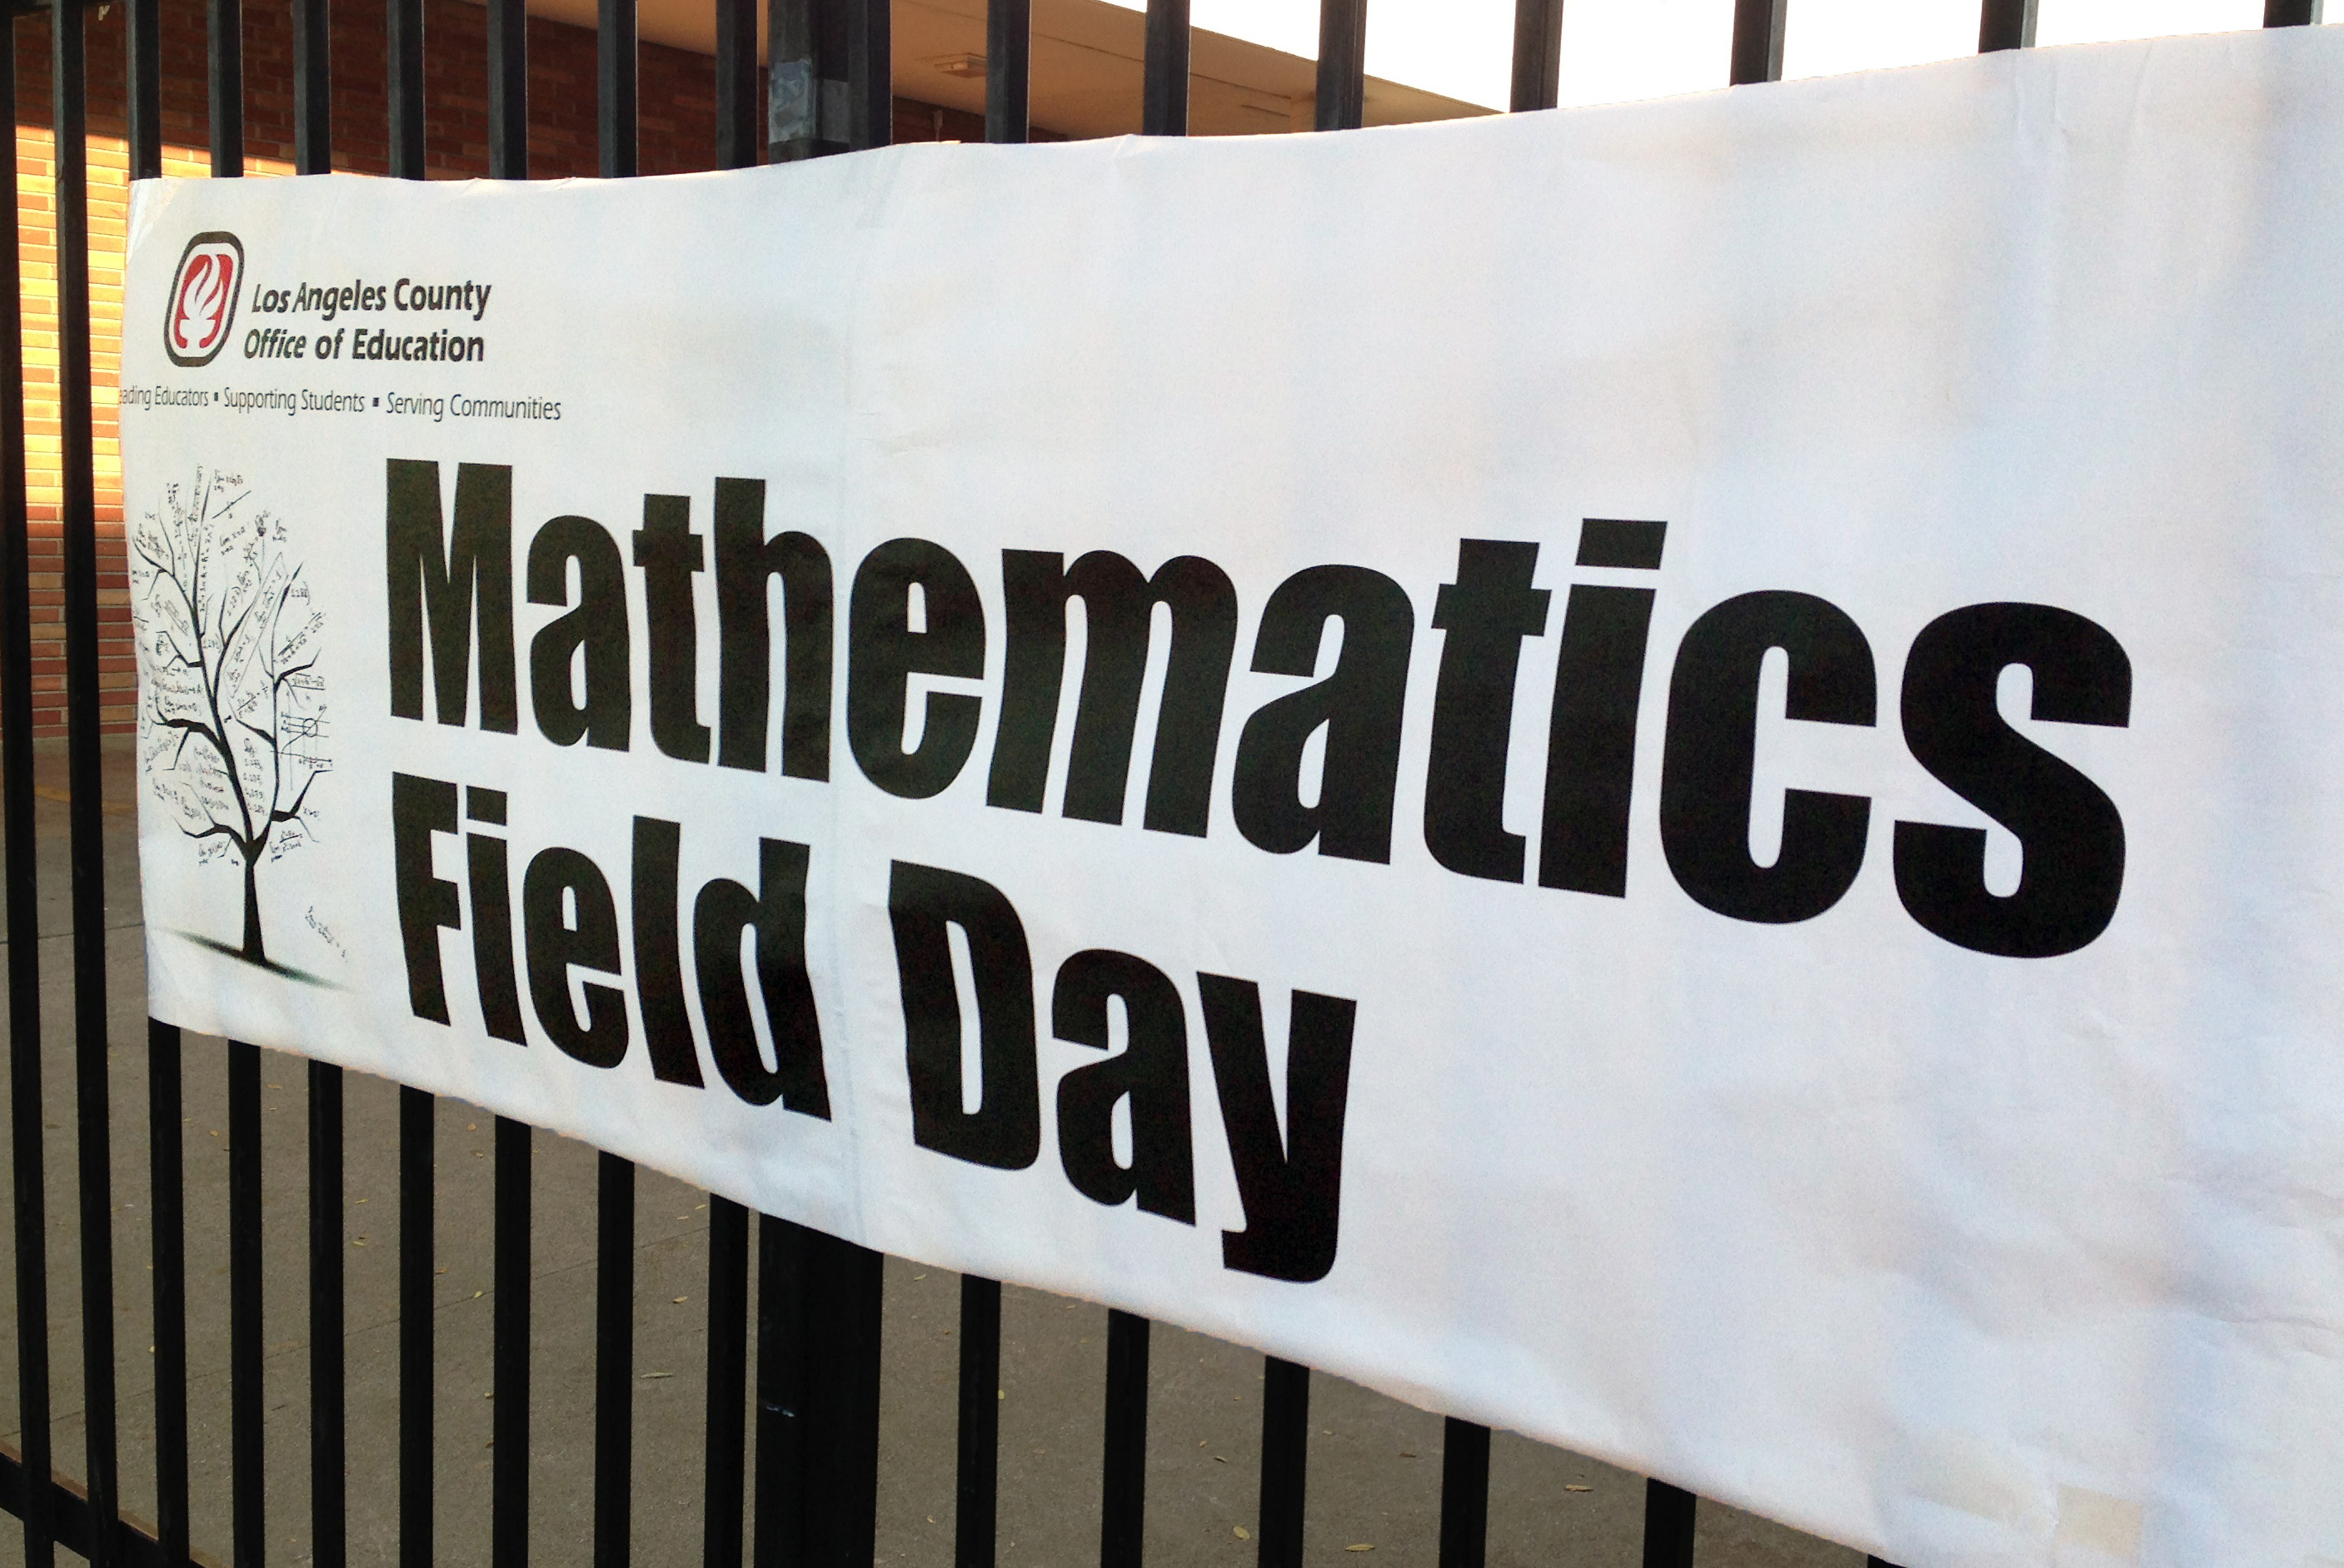 LA County Math Field Day 2017 Save the Date